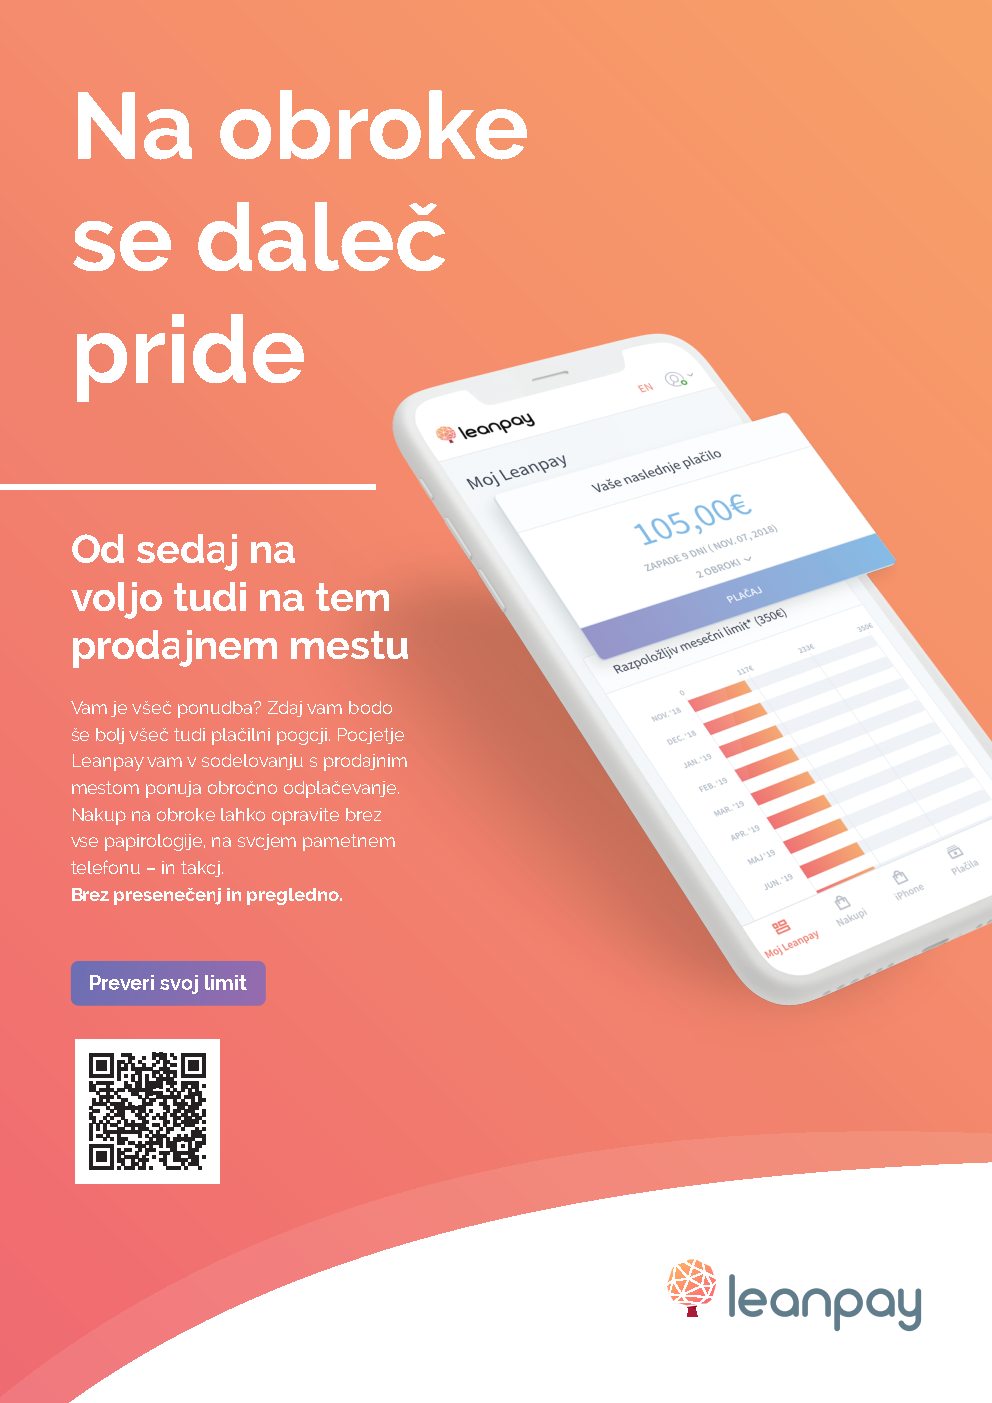 leanpay-2019-flyer_12_november_2019_REDNI_Page1.png